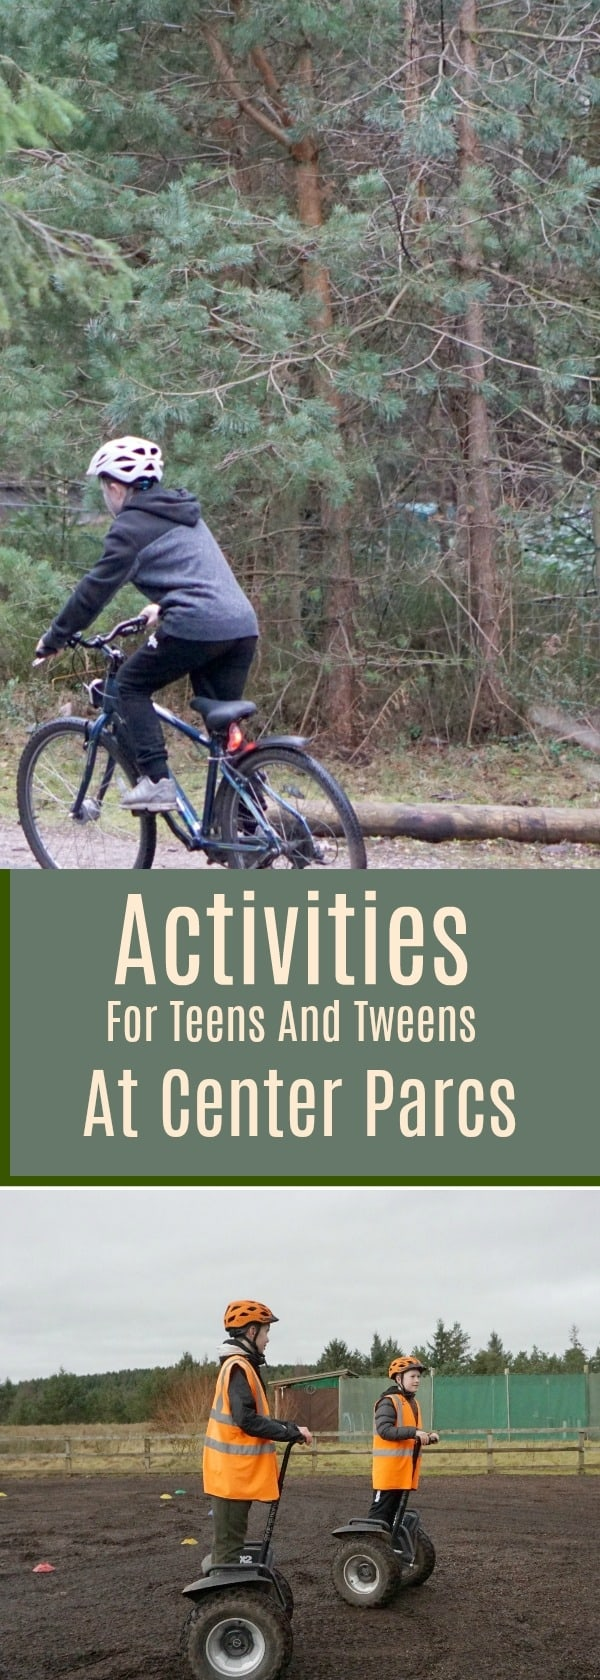 Activities For Teens And Tweens At Center Parcs, Including Adrenaline Activities such a climbing and zip wires, segway experience and some lower cost activities